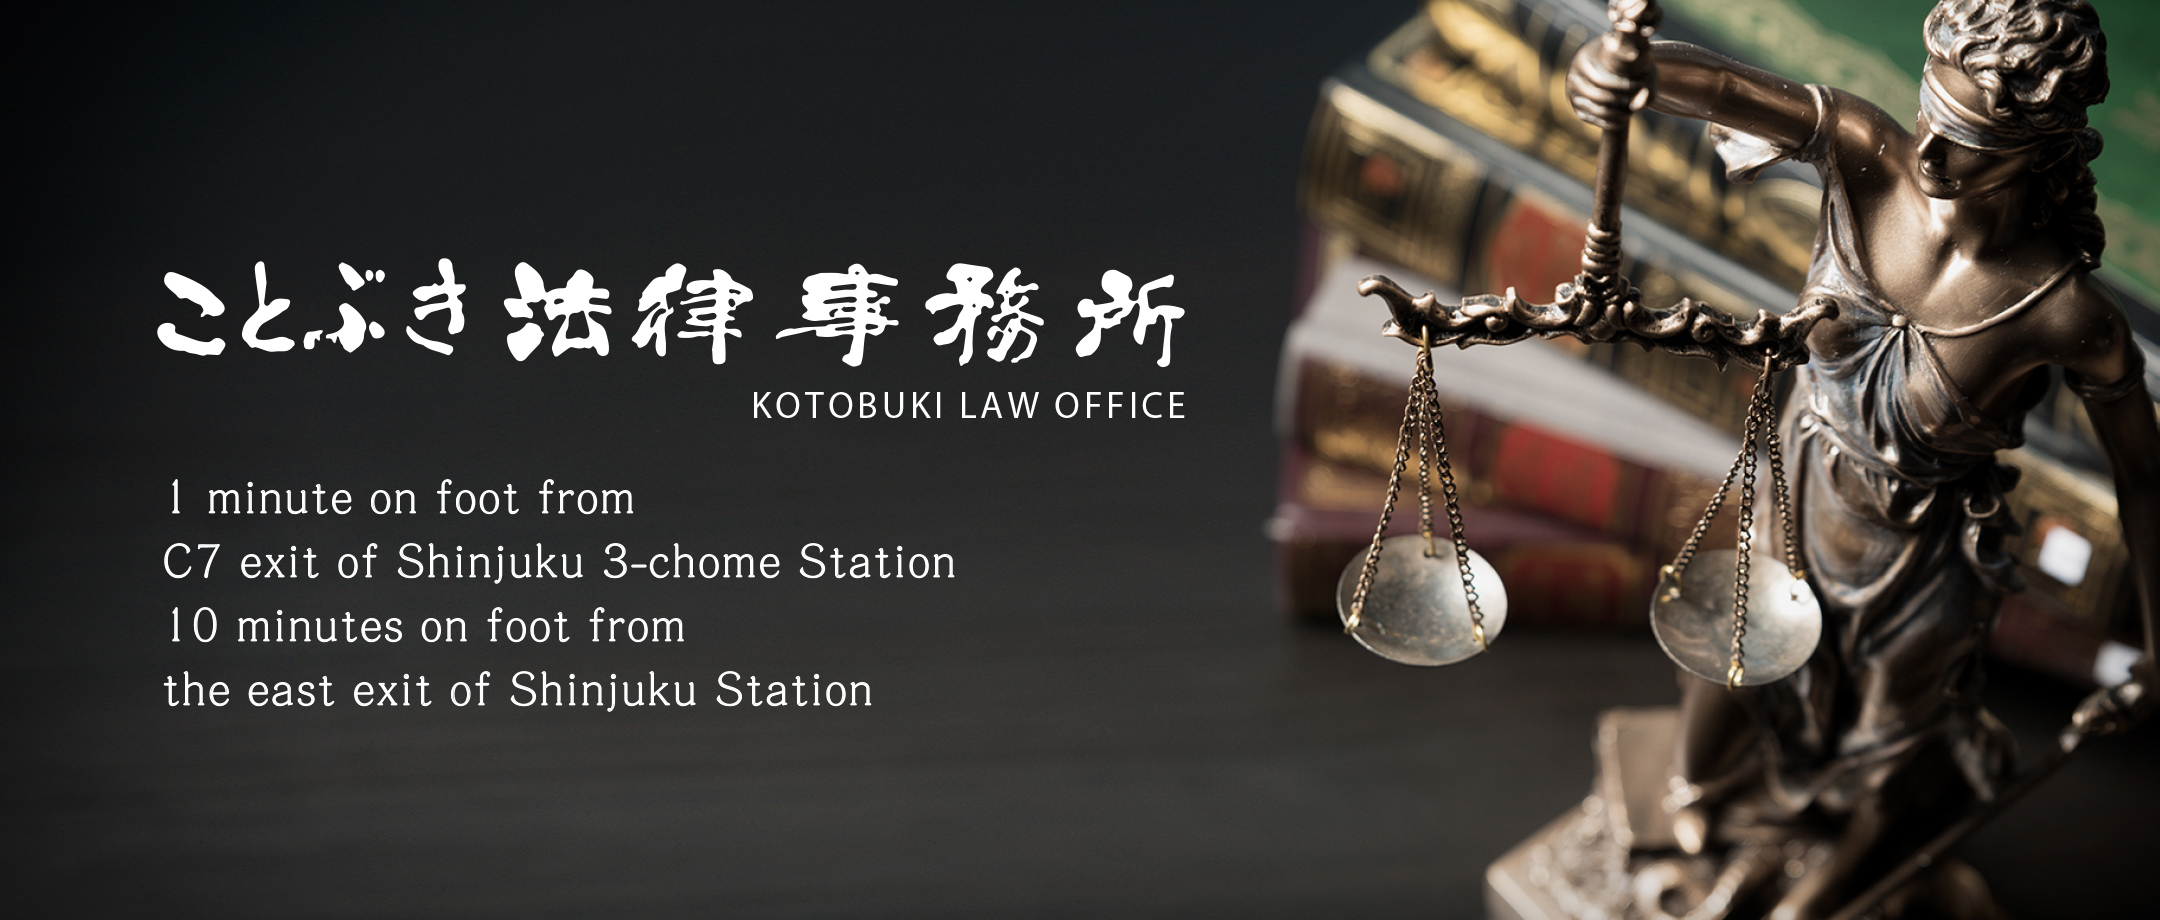 KOTOBUKI LAW OFFICE